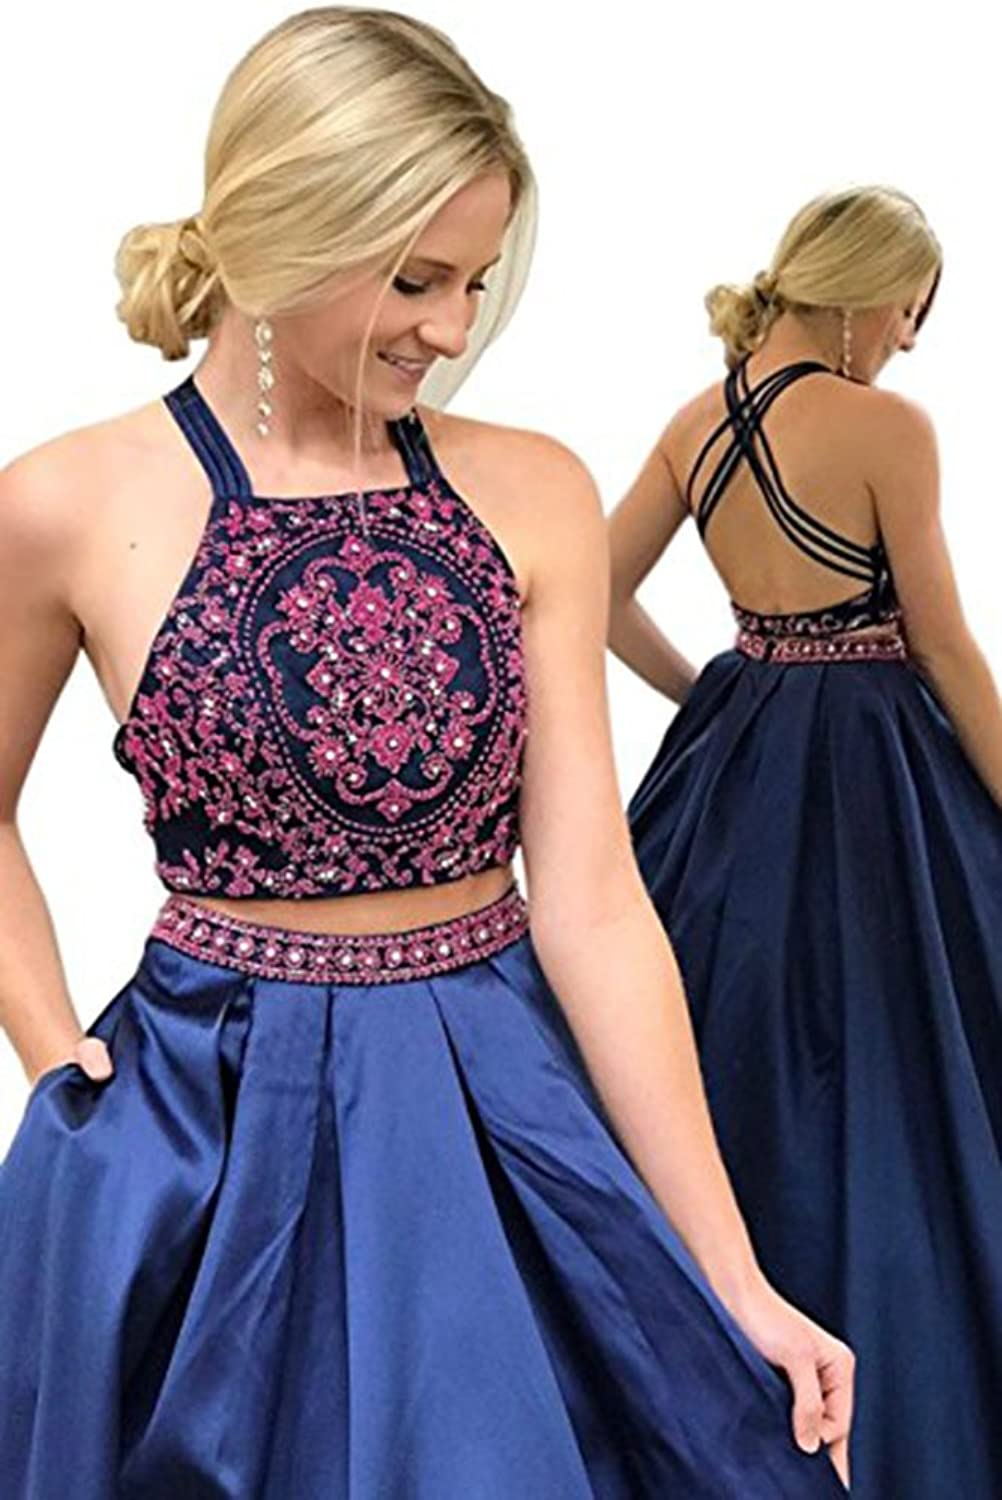 Chenghouse 2 Piece Prom Dresses 2018 Backless Prom Party Dress